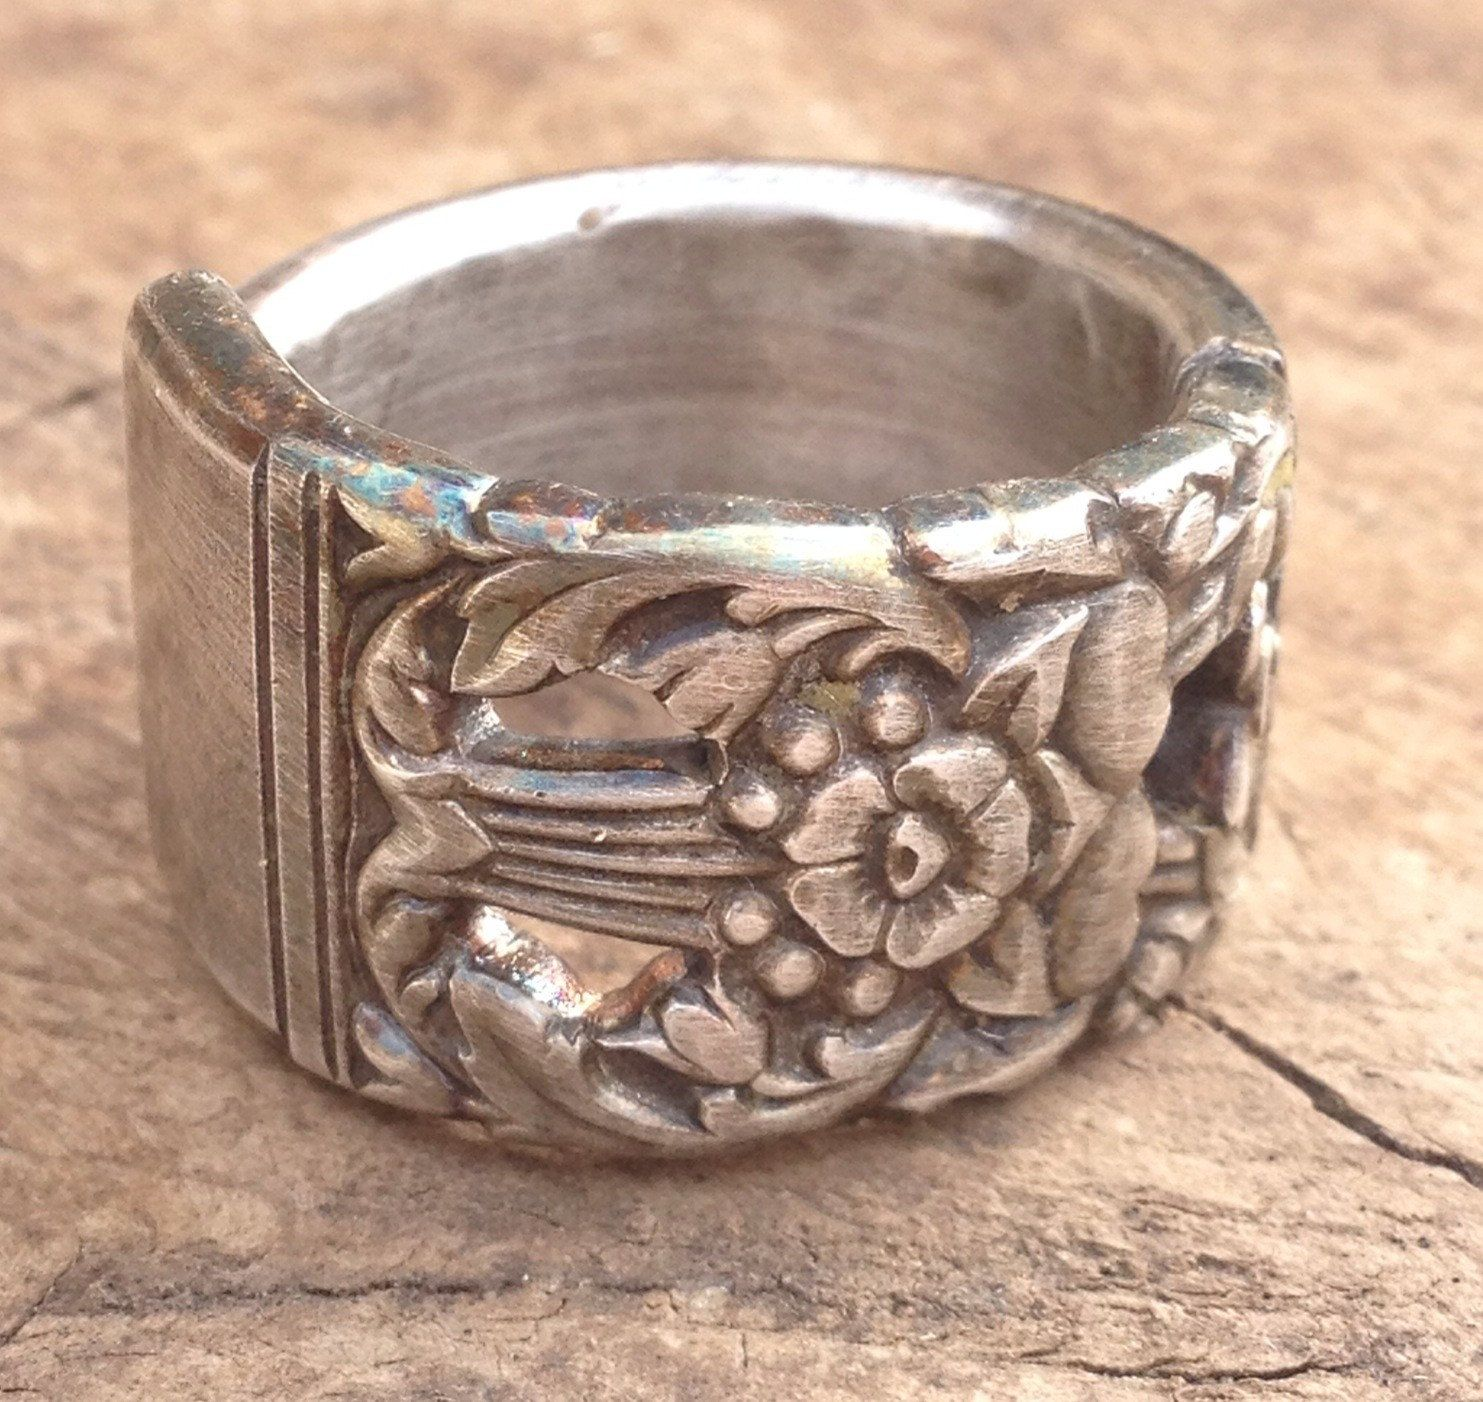 Floral Ring Gifts for Her Boho Ring Vintage Spoon Ring Silverware Jewelry Silver Spoon Ring Size 4.5 Spoon Ring